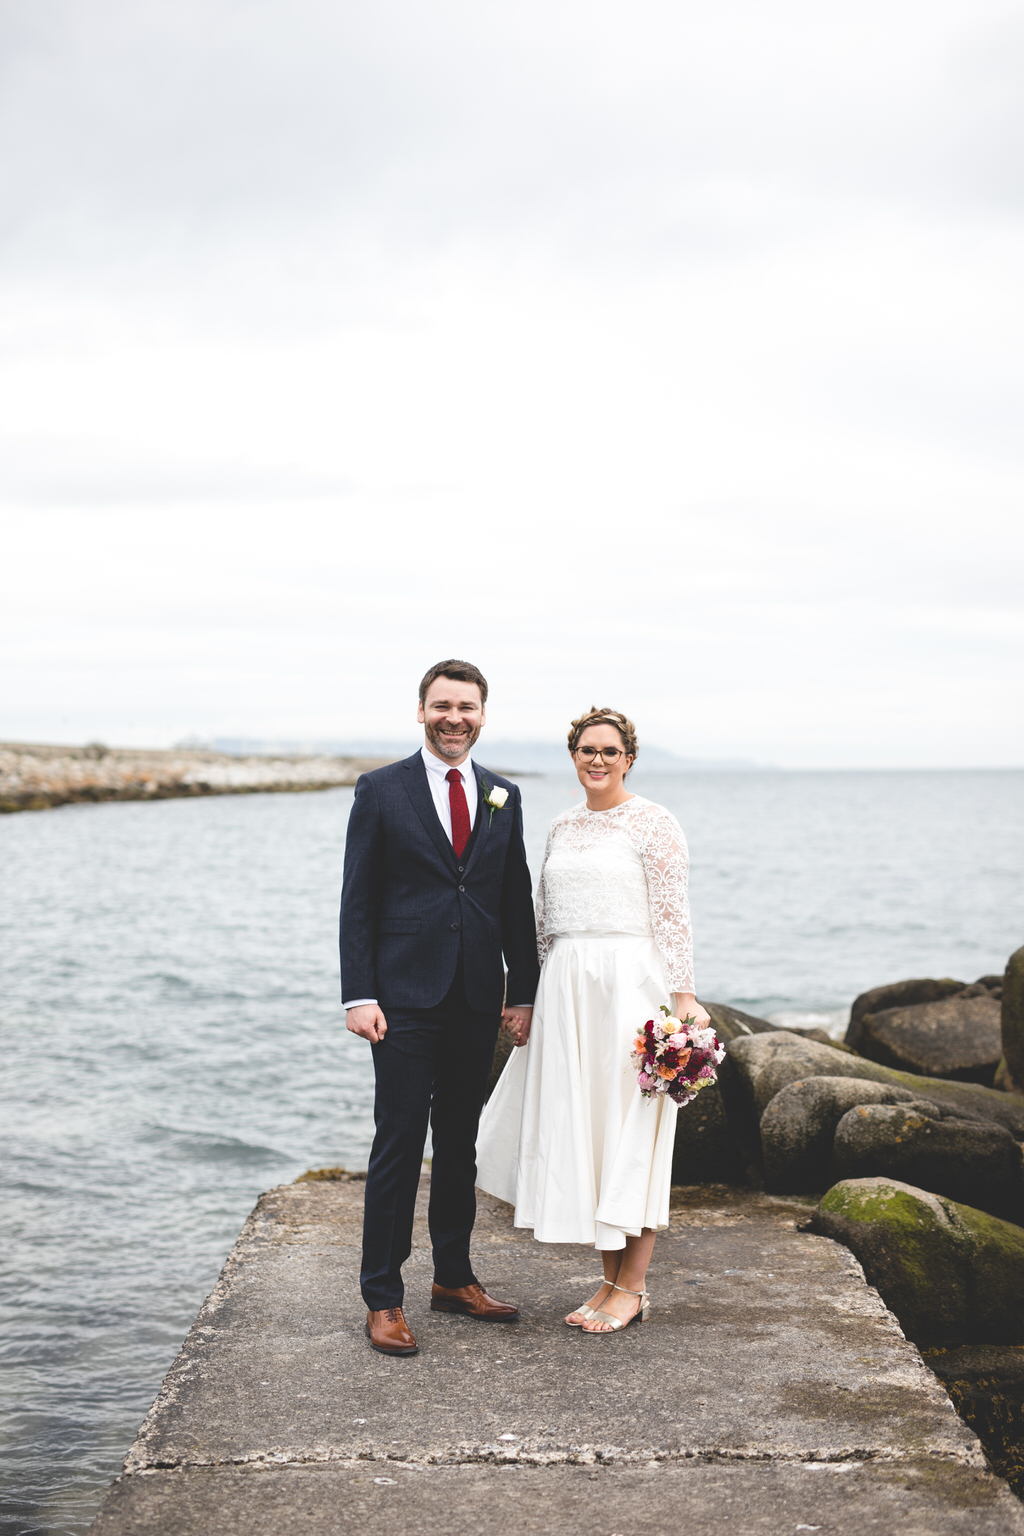 Contemporary wedding photography by Wild Things Wed